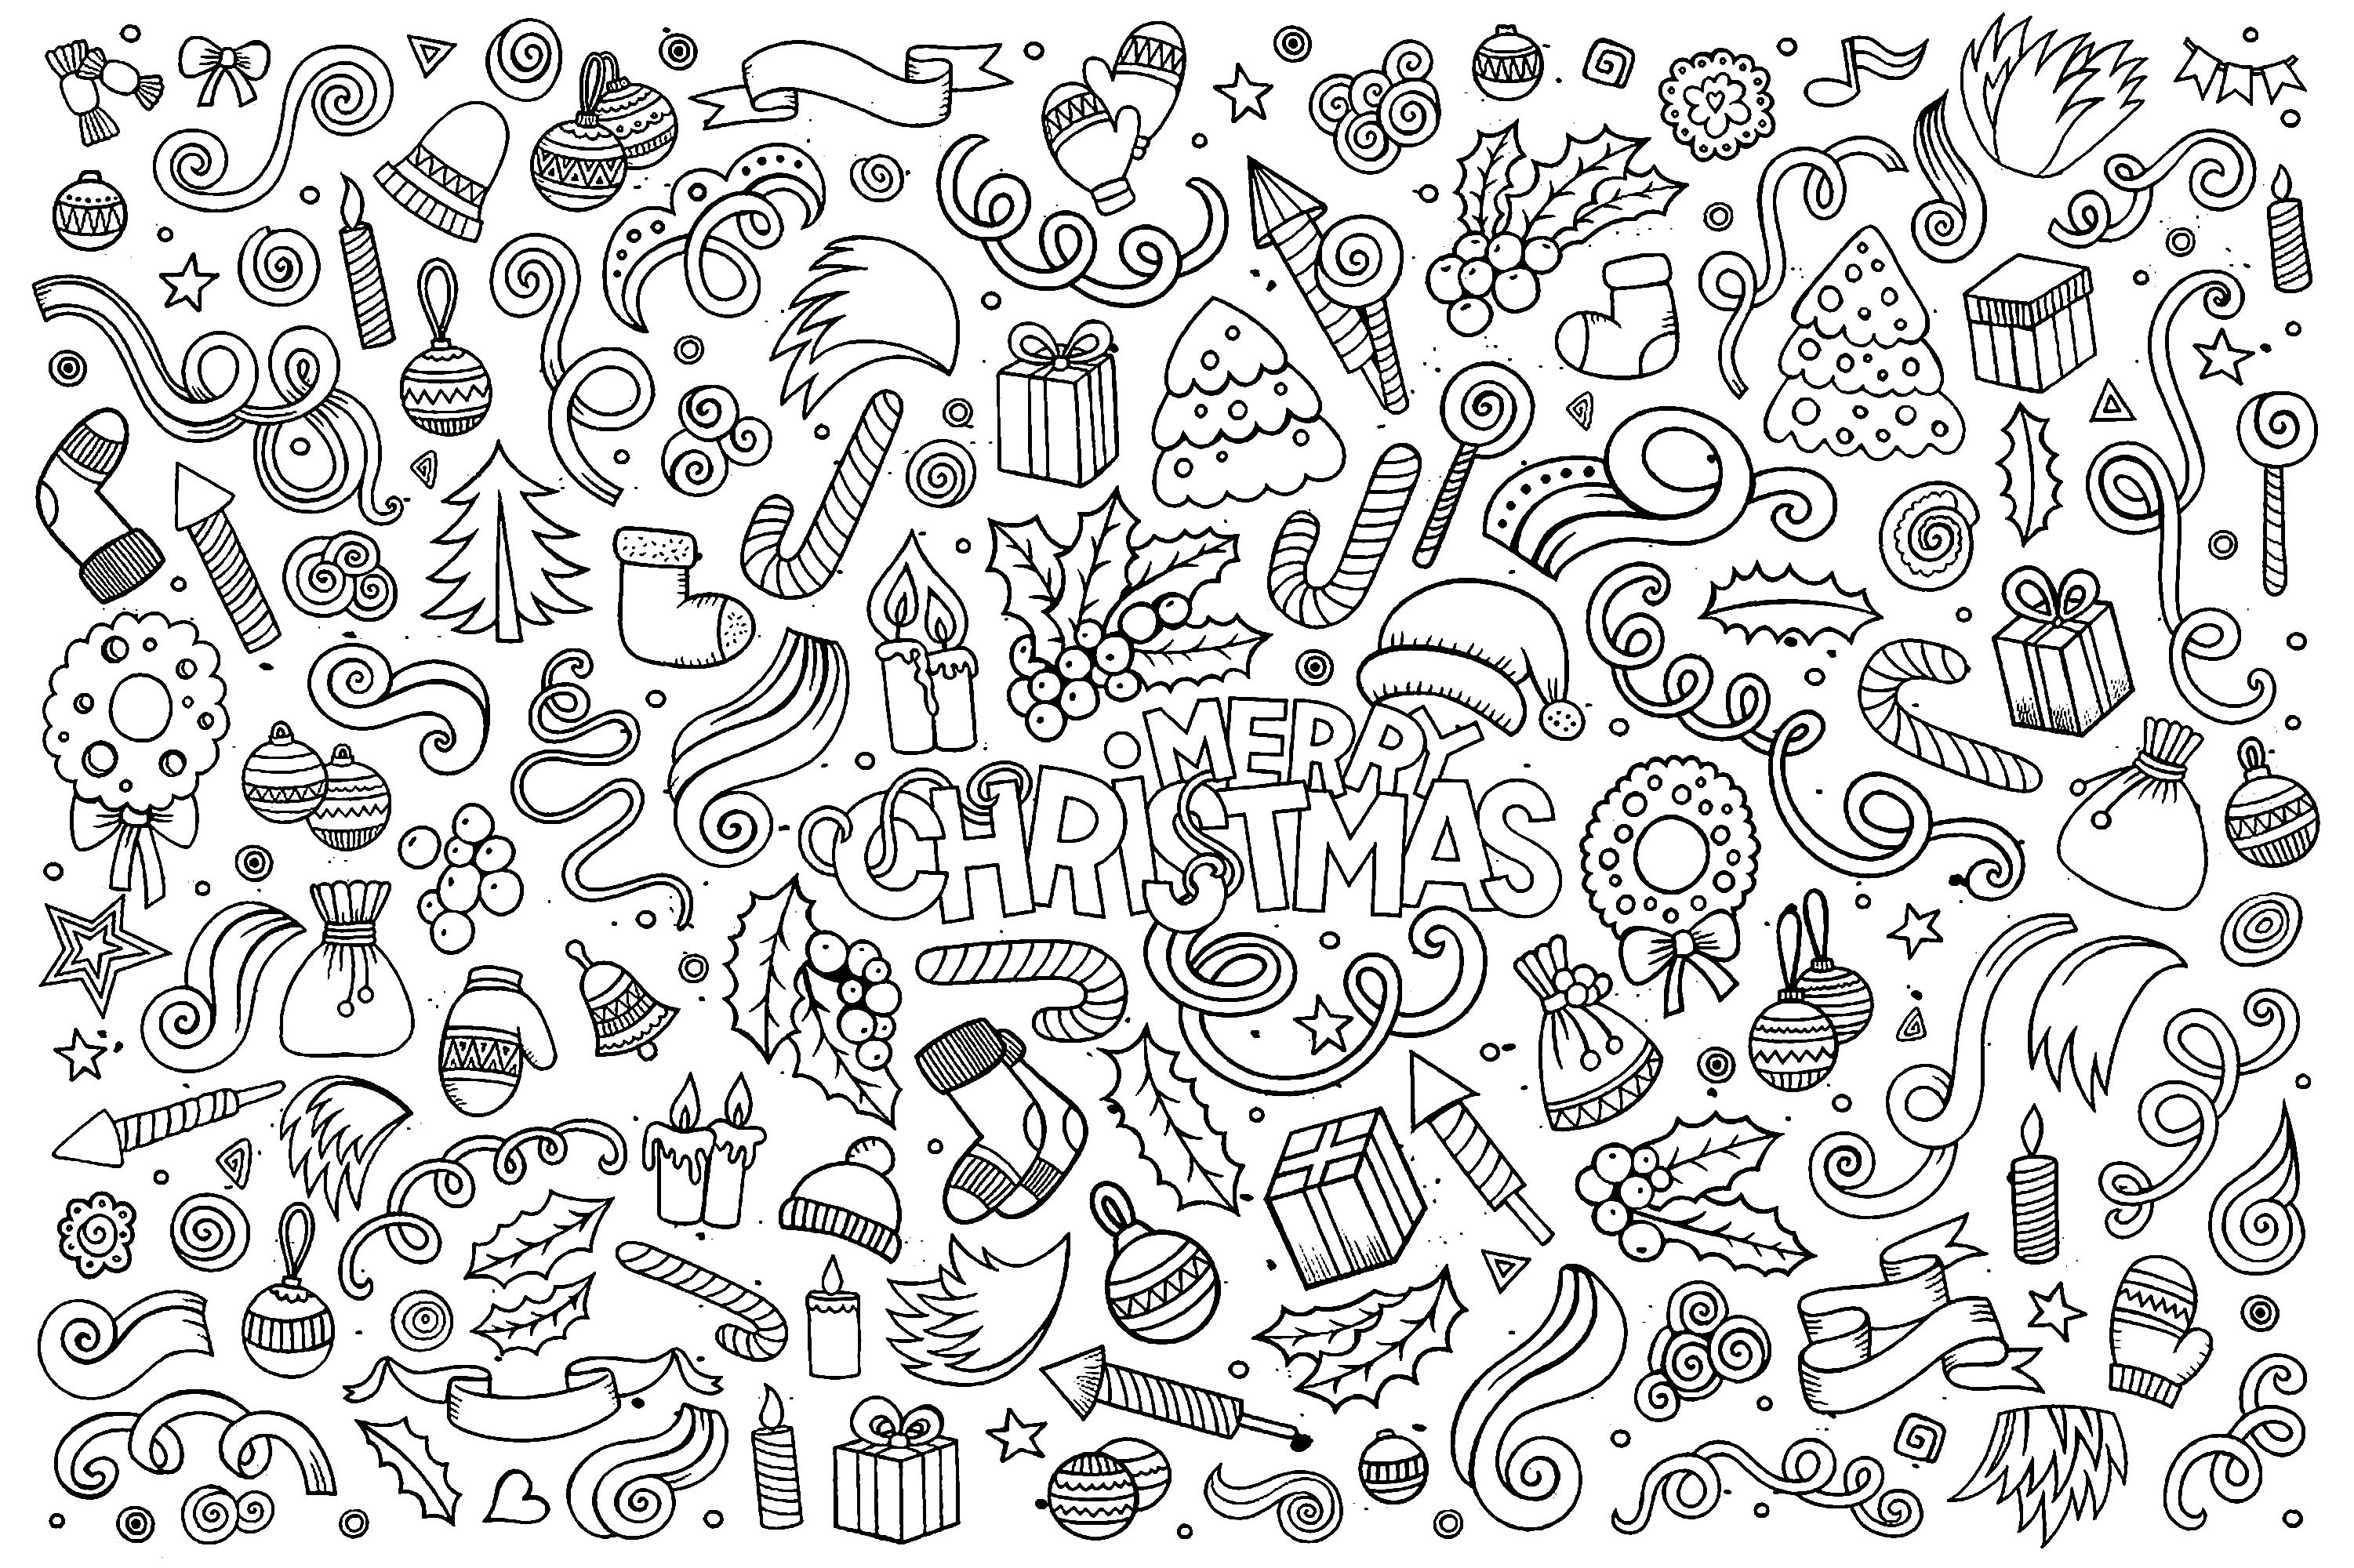 various objects linked to celebrate the magic of christmas in an incredible coloring page